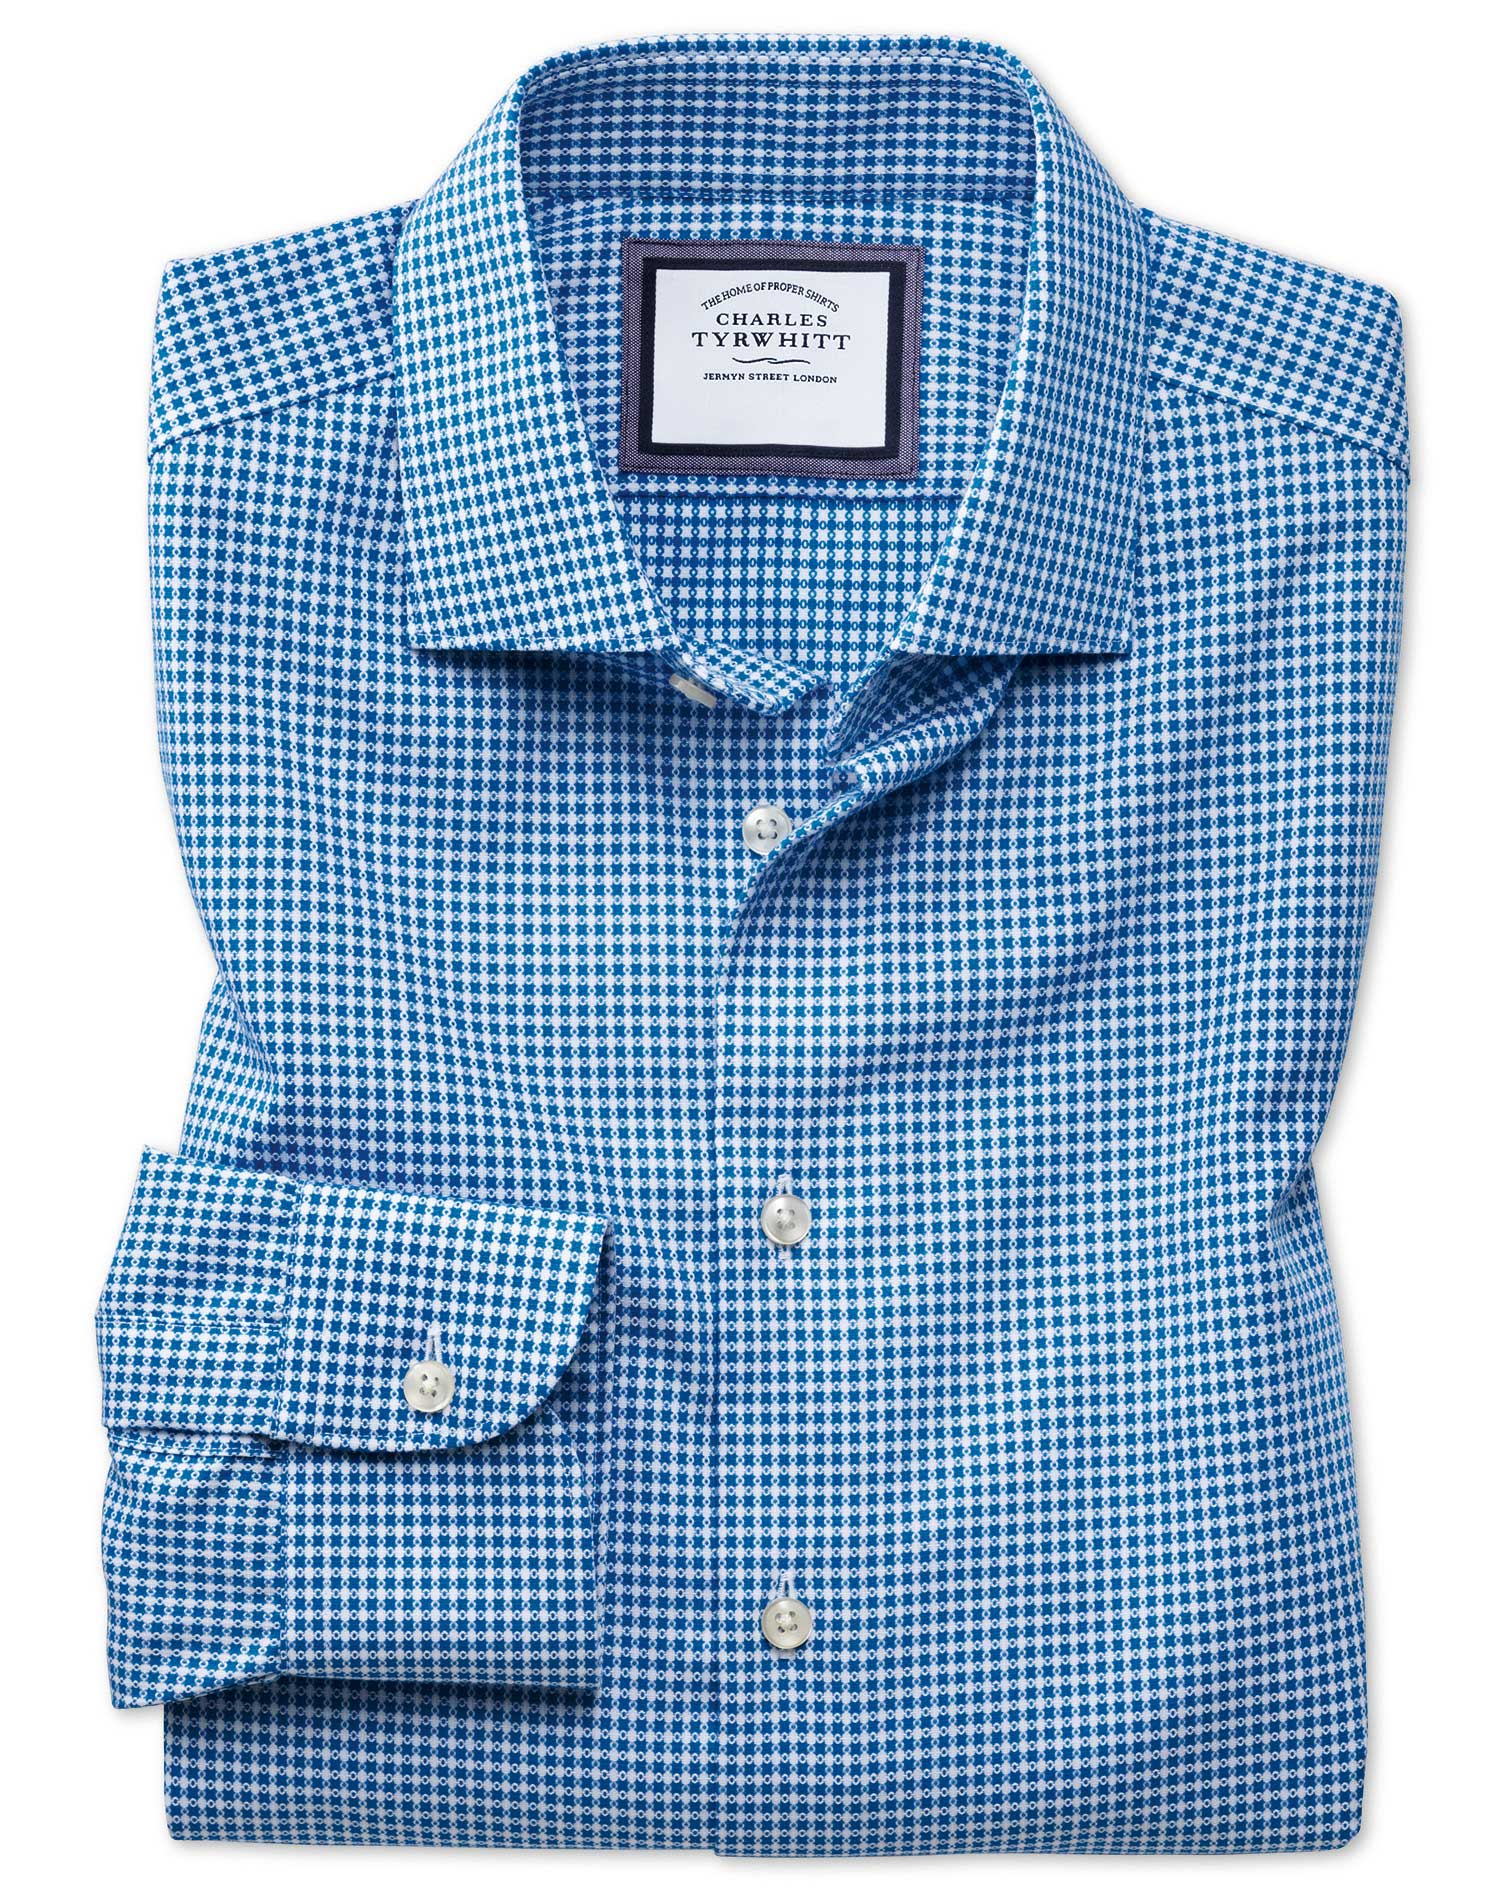 Classic Fit Semi-Cutaway Business Casual Non-Iron Modern Textures Blue and White Spot Cotton Formal